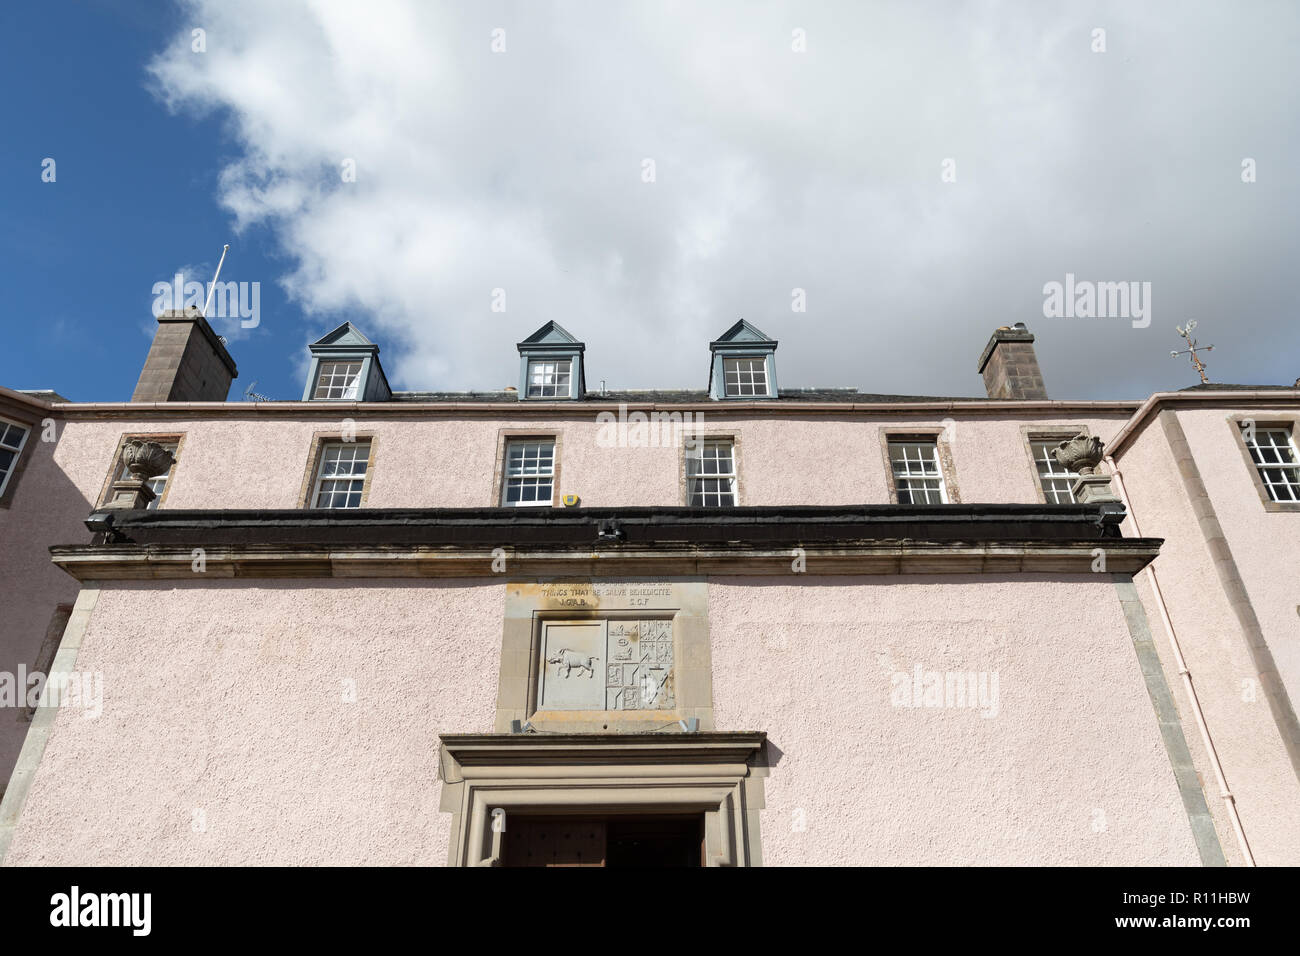 Looking up at Colstoun House, Haddington - Stock Image